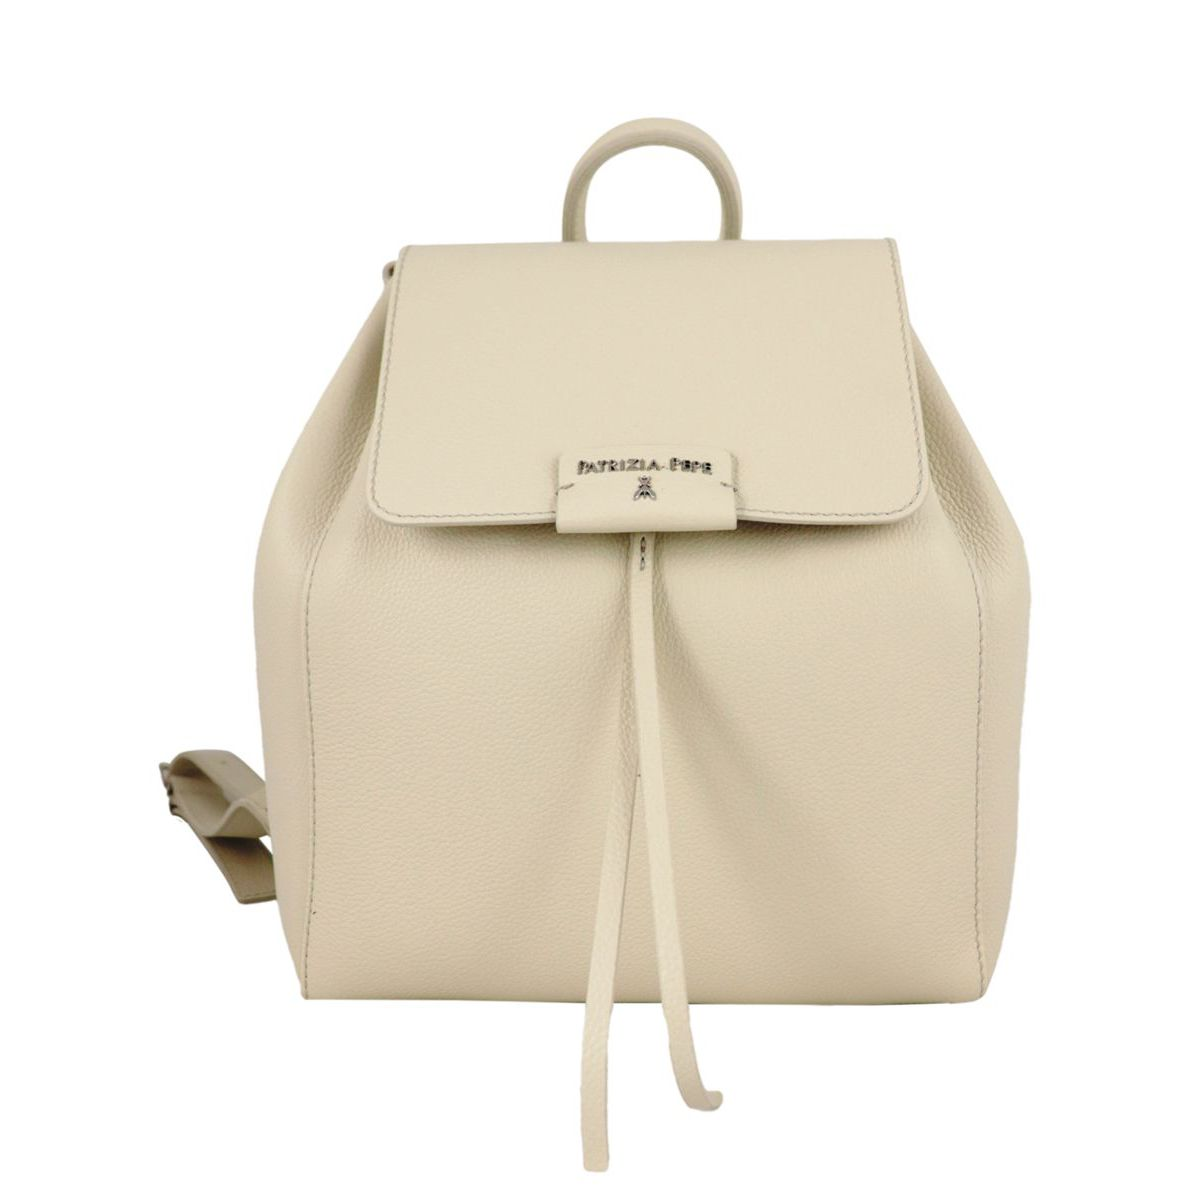 Textured leather backpack with logo Ivory Patrizia Pepe